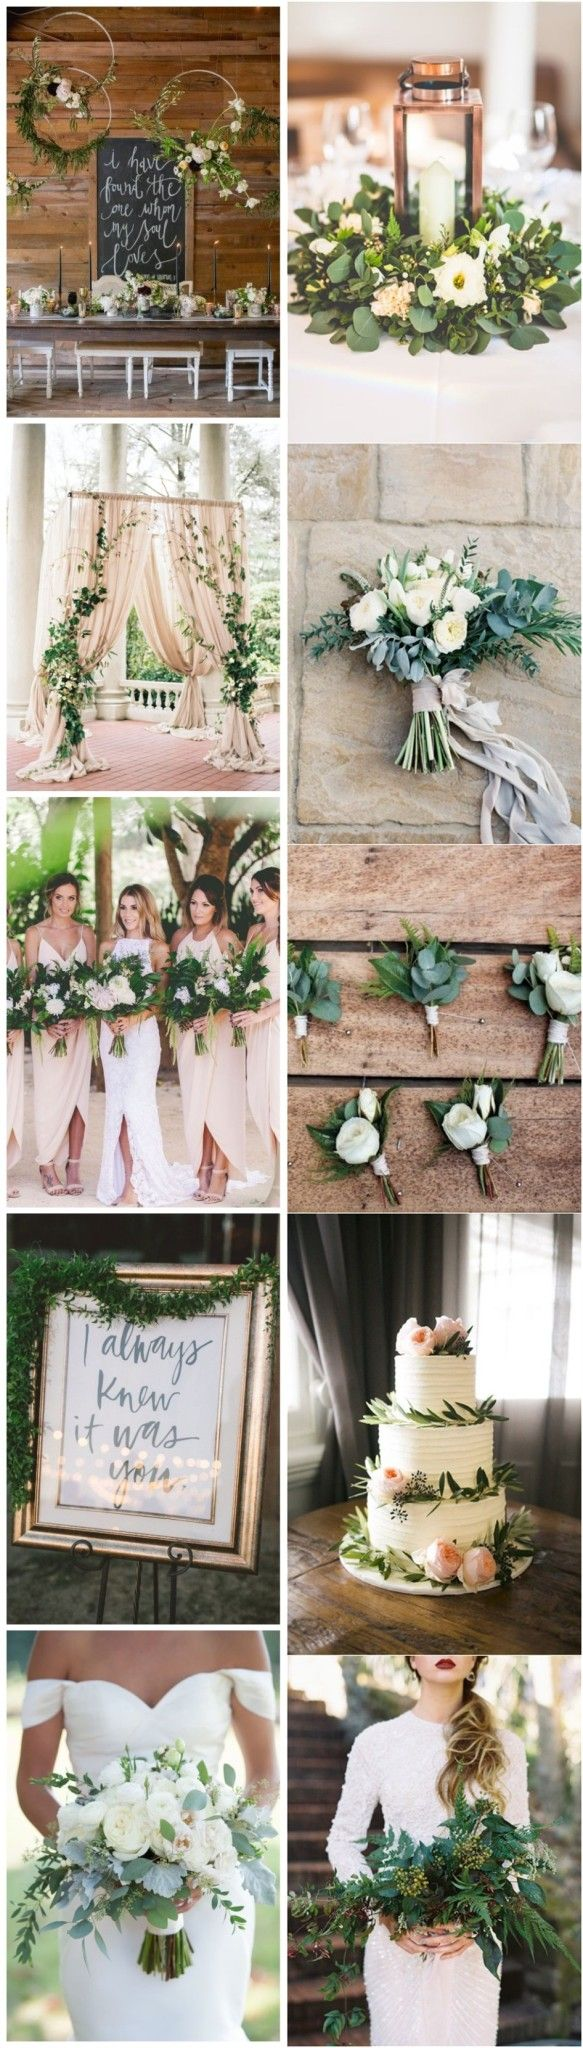 Greenery wedding color ideas 2017